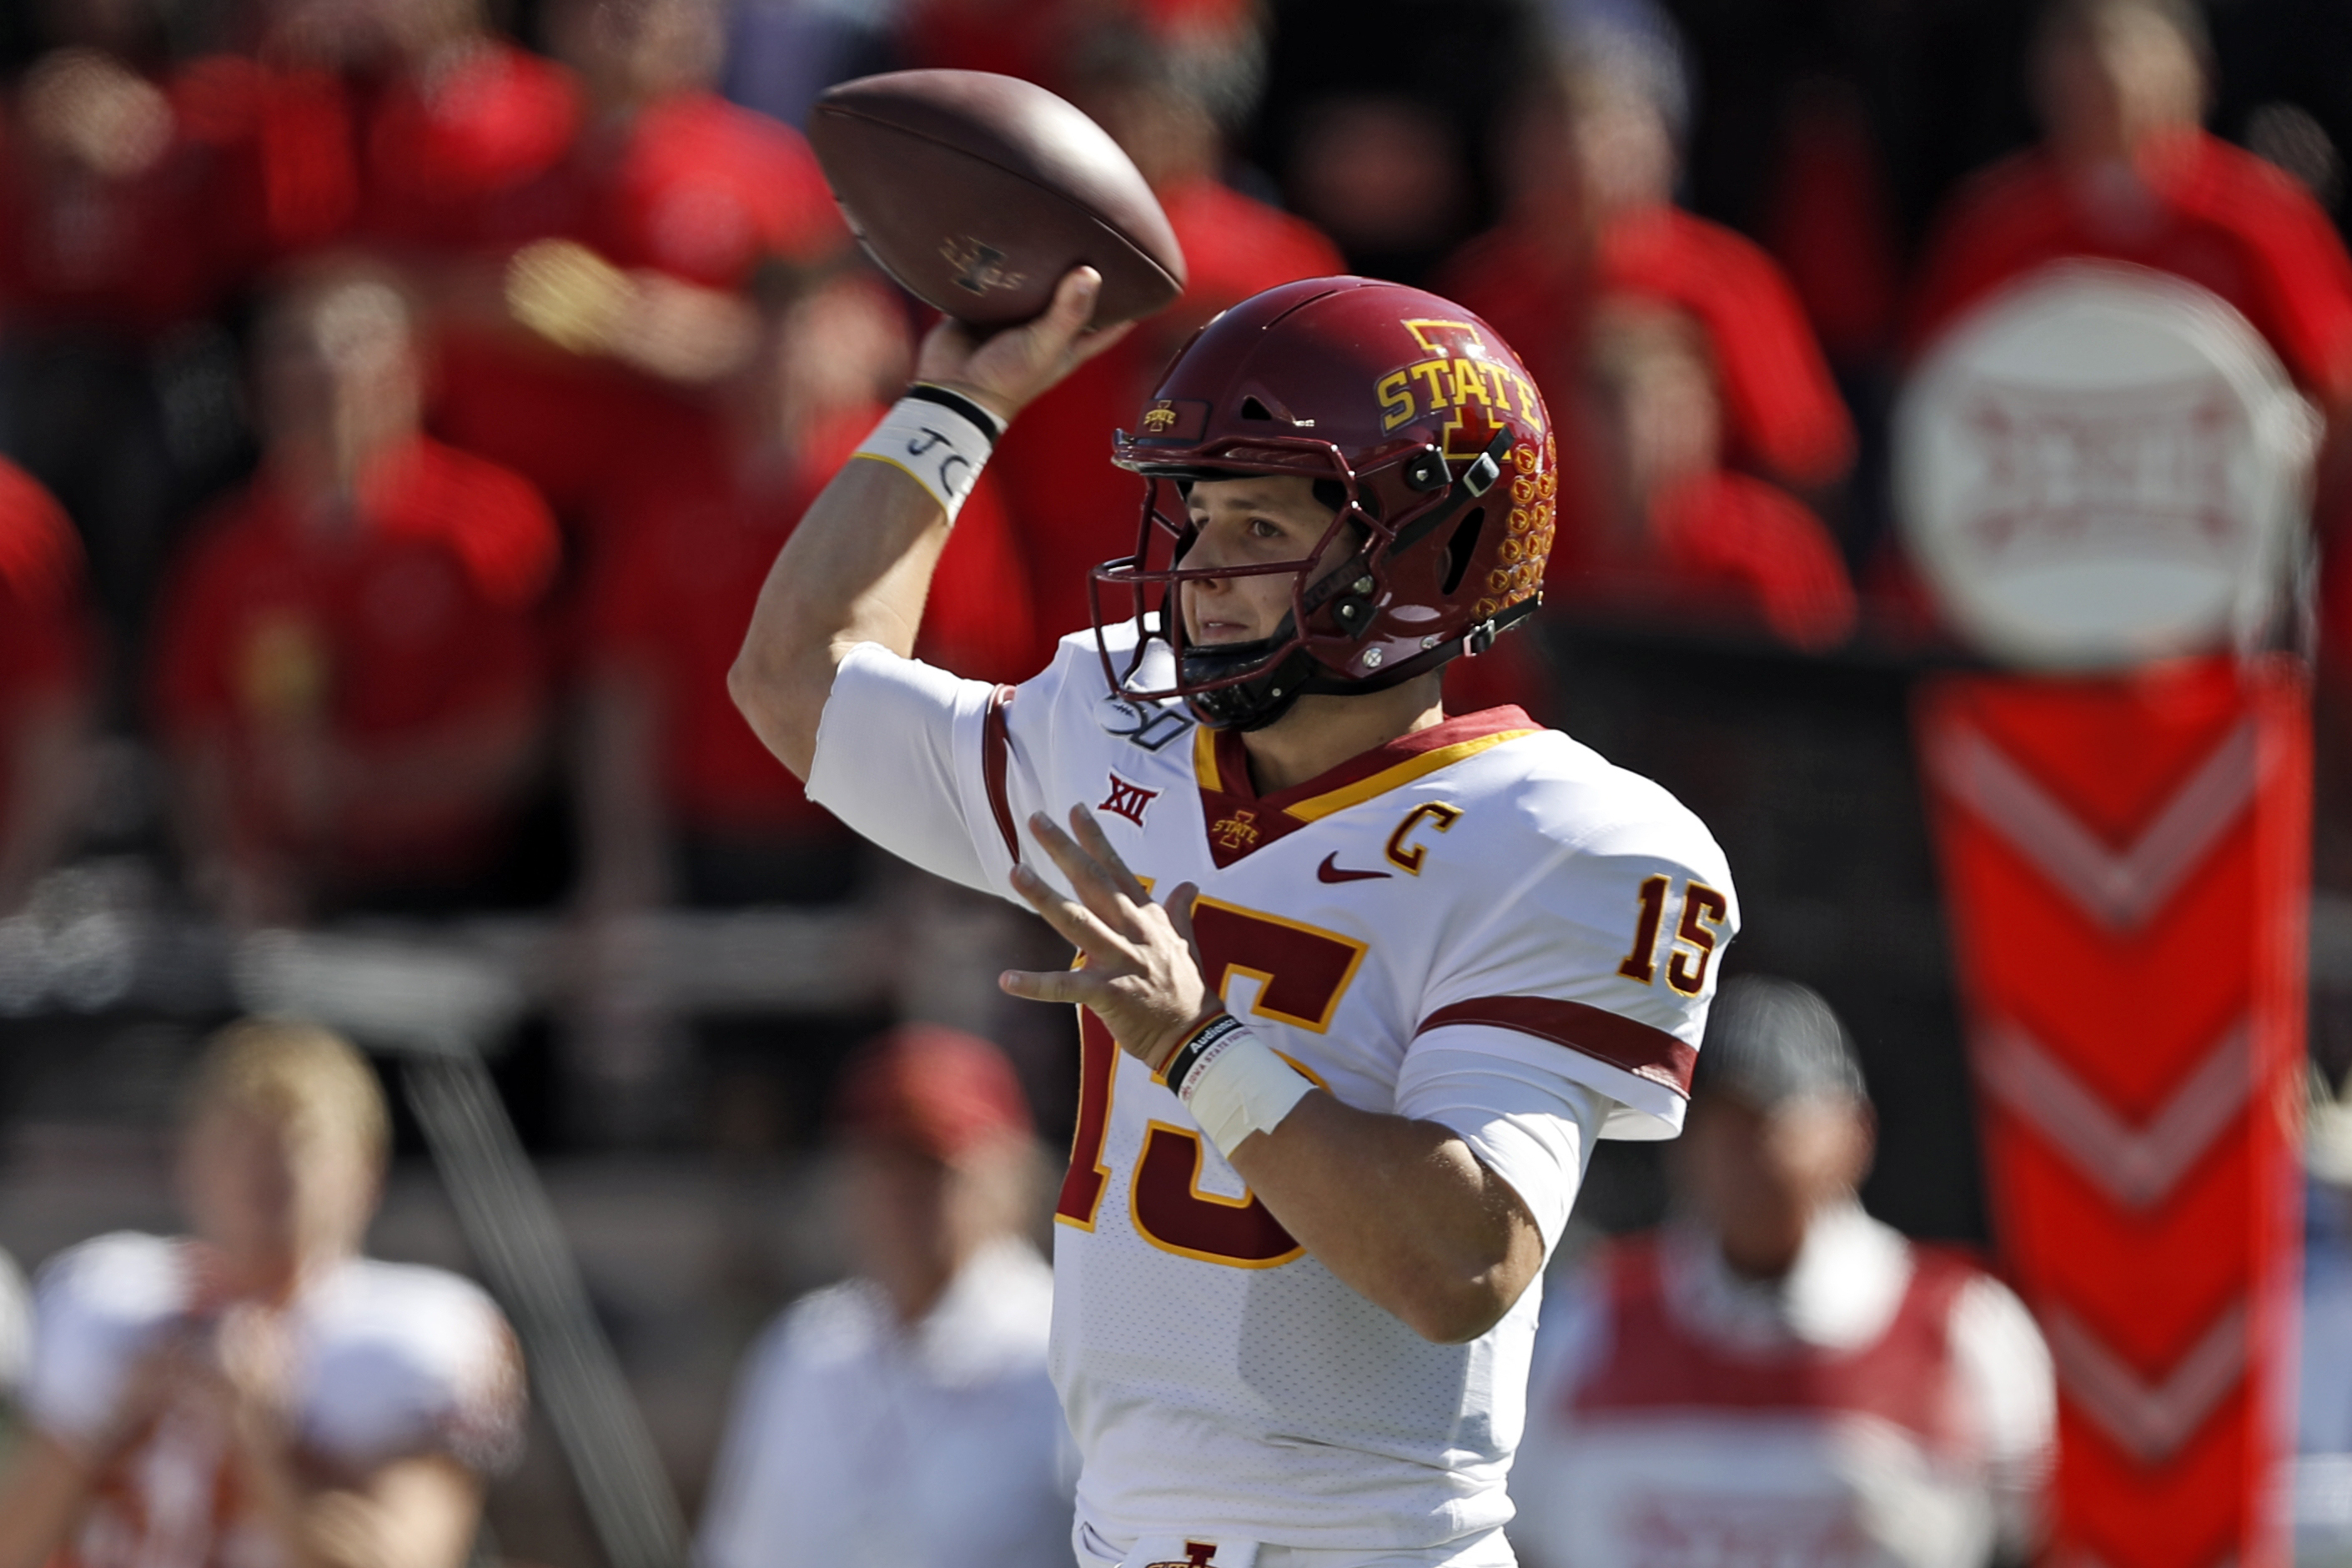 Oklahoma St faces tough challenge Cyclones QB Brock Purdy